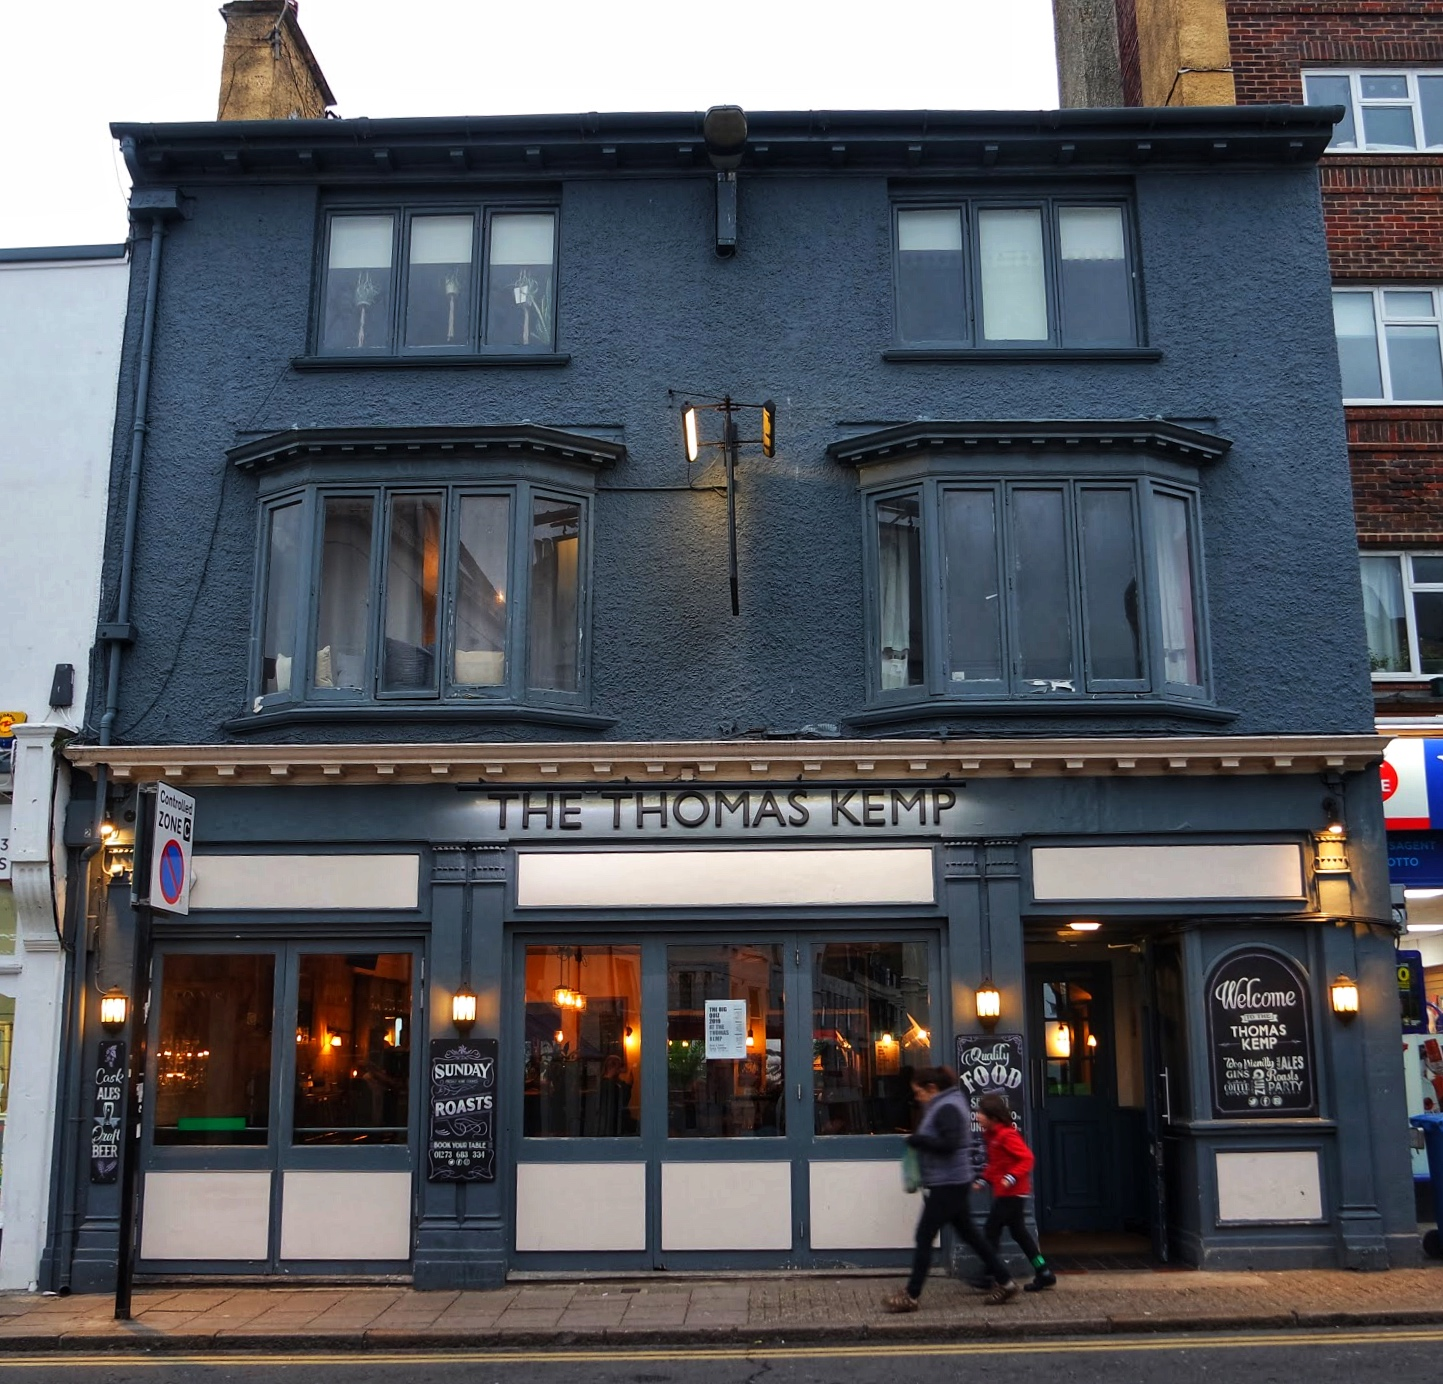 - The Thomas kemp8 ST GEORGES ROAD, BRIGHTON, EAST SUSSEXBN2 1EB01273 683334HELLO@THOMASKEMP.PUB